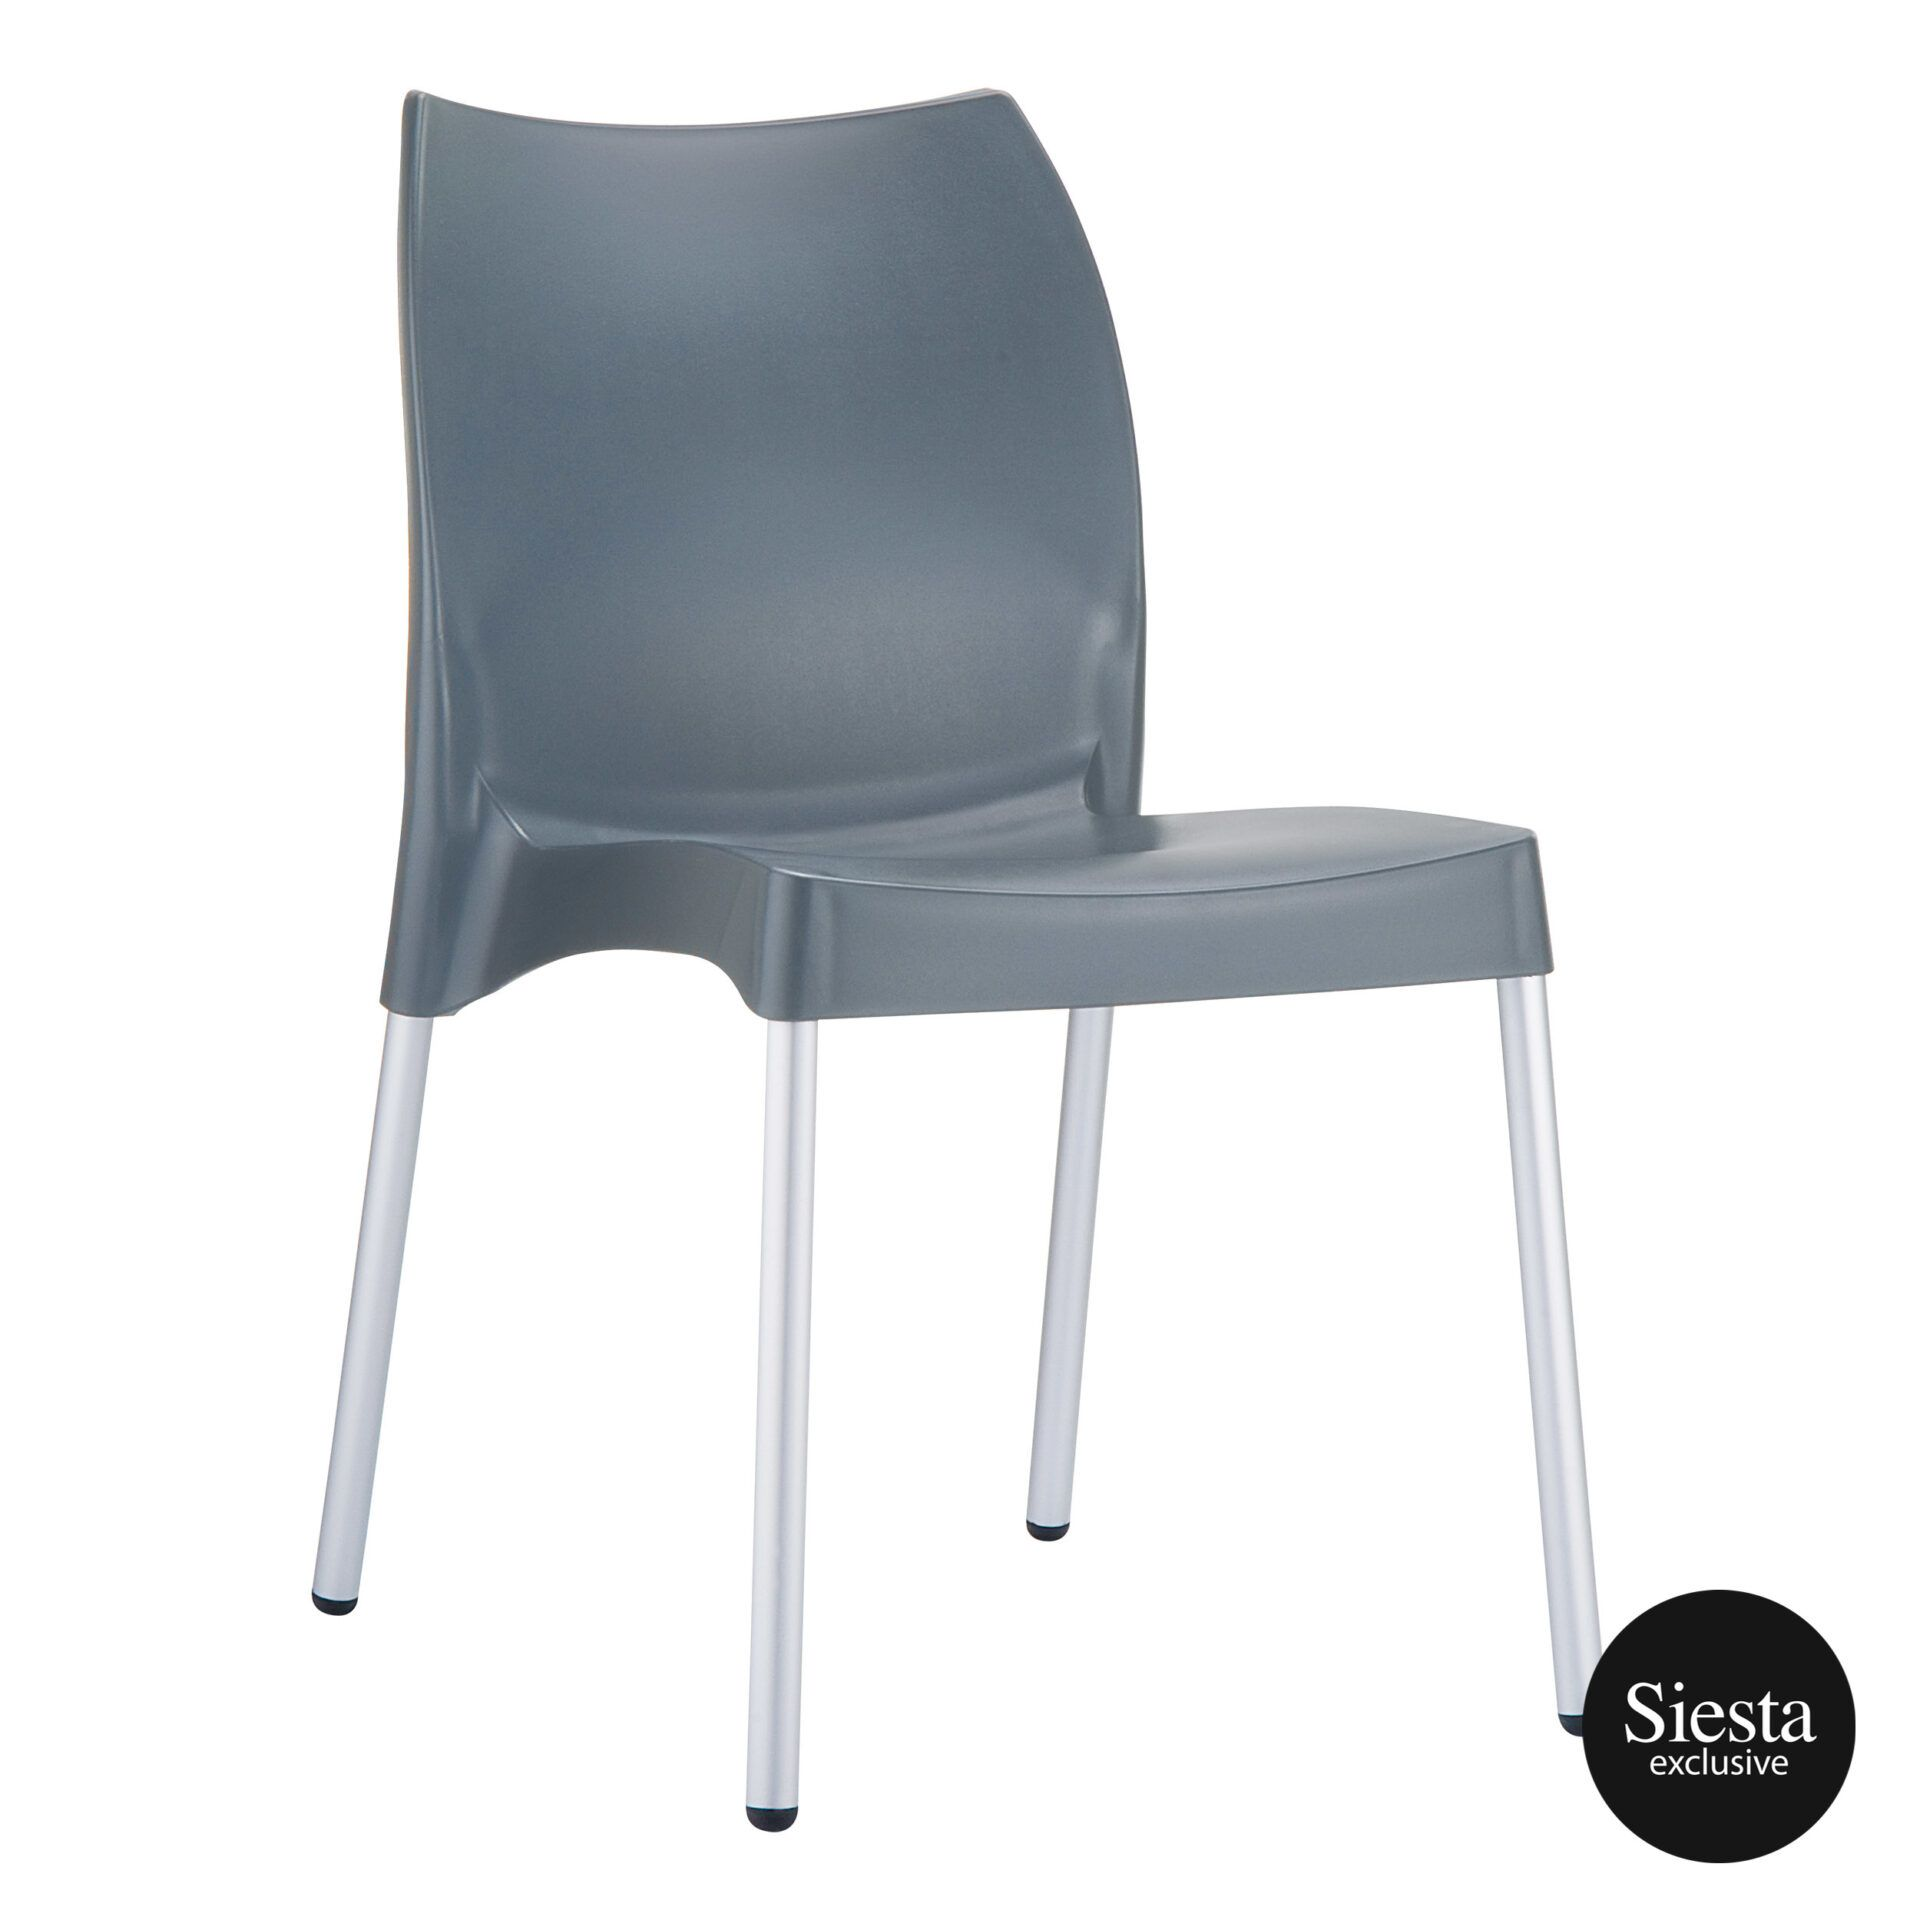 commercial outdoor hospitality seating vita chair darkgrey front side 1